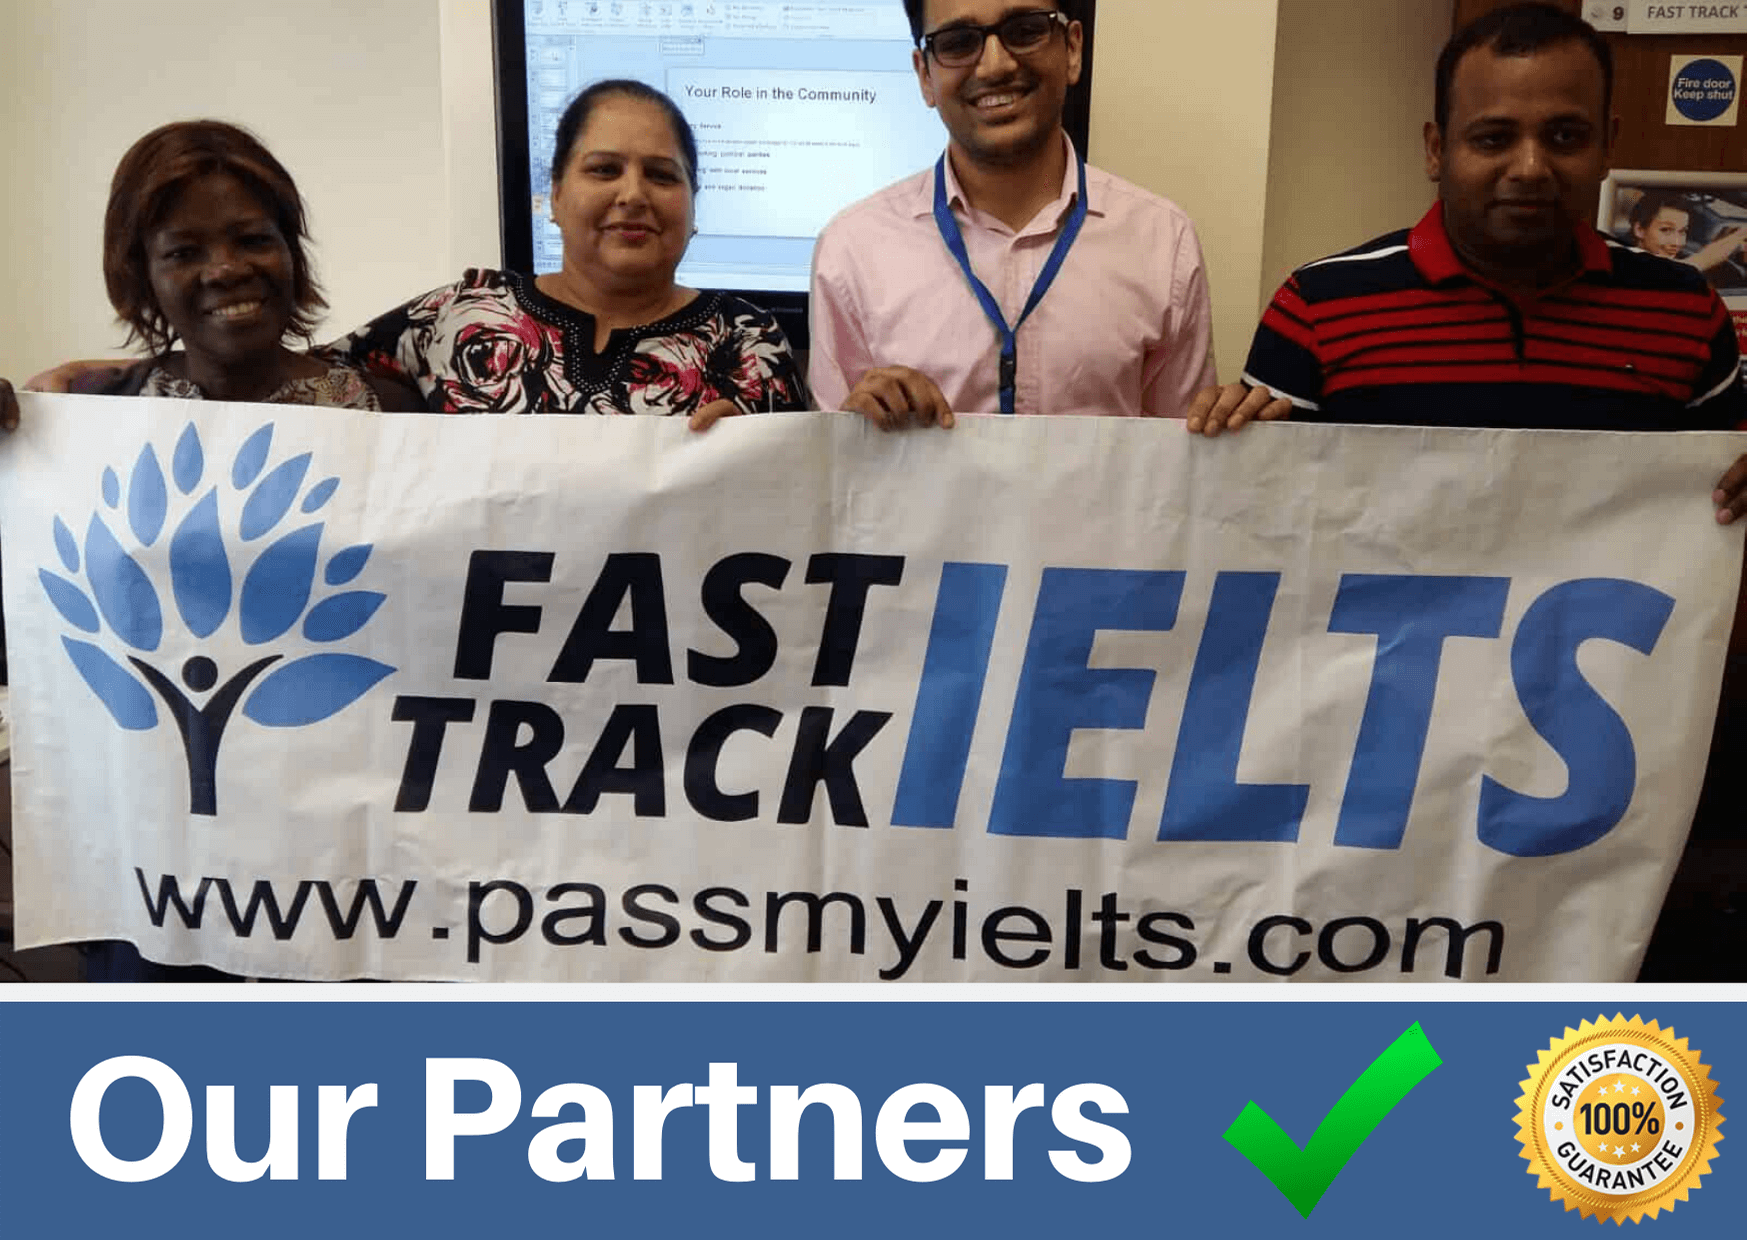 our partners are fast track ielts